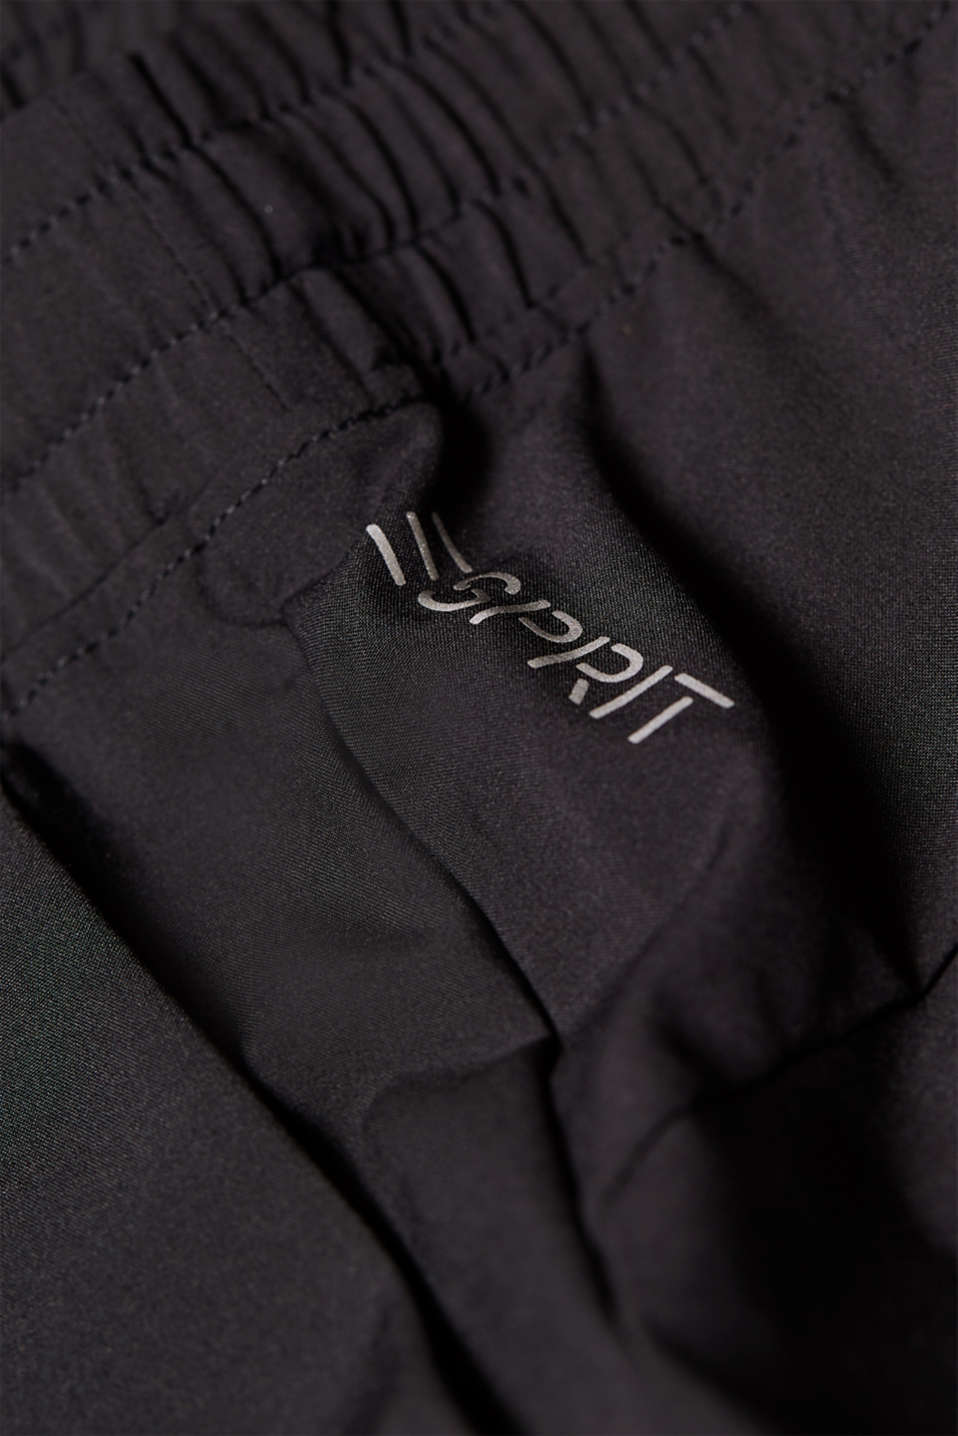 Lightweight woven trousers with turn-up hems, E-DRY, BLACK, detail image number 3